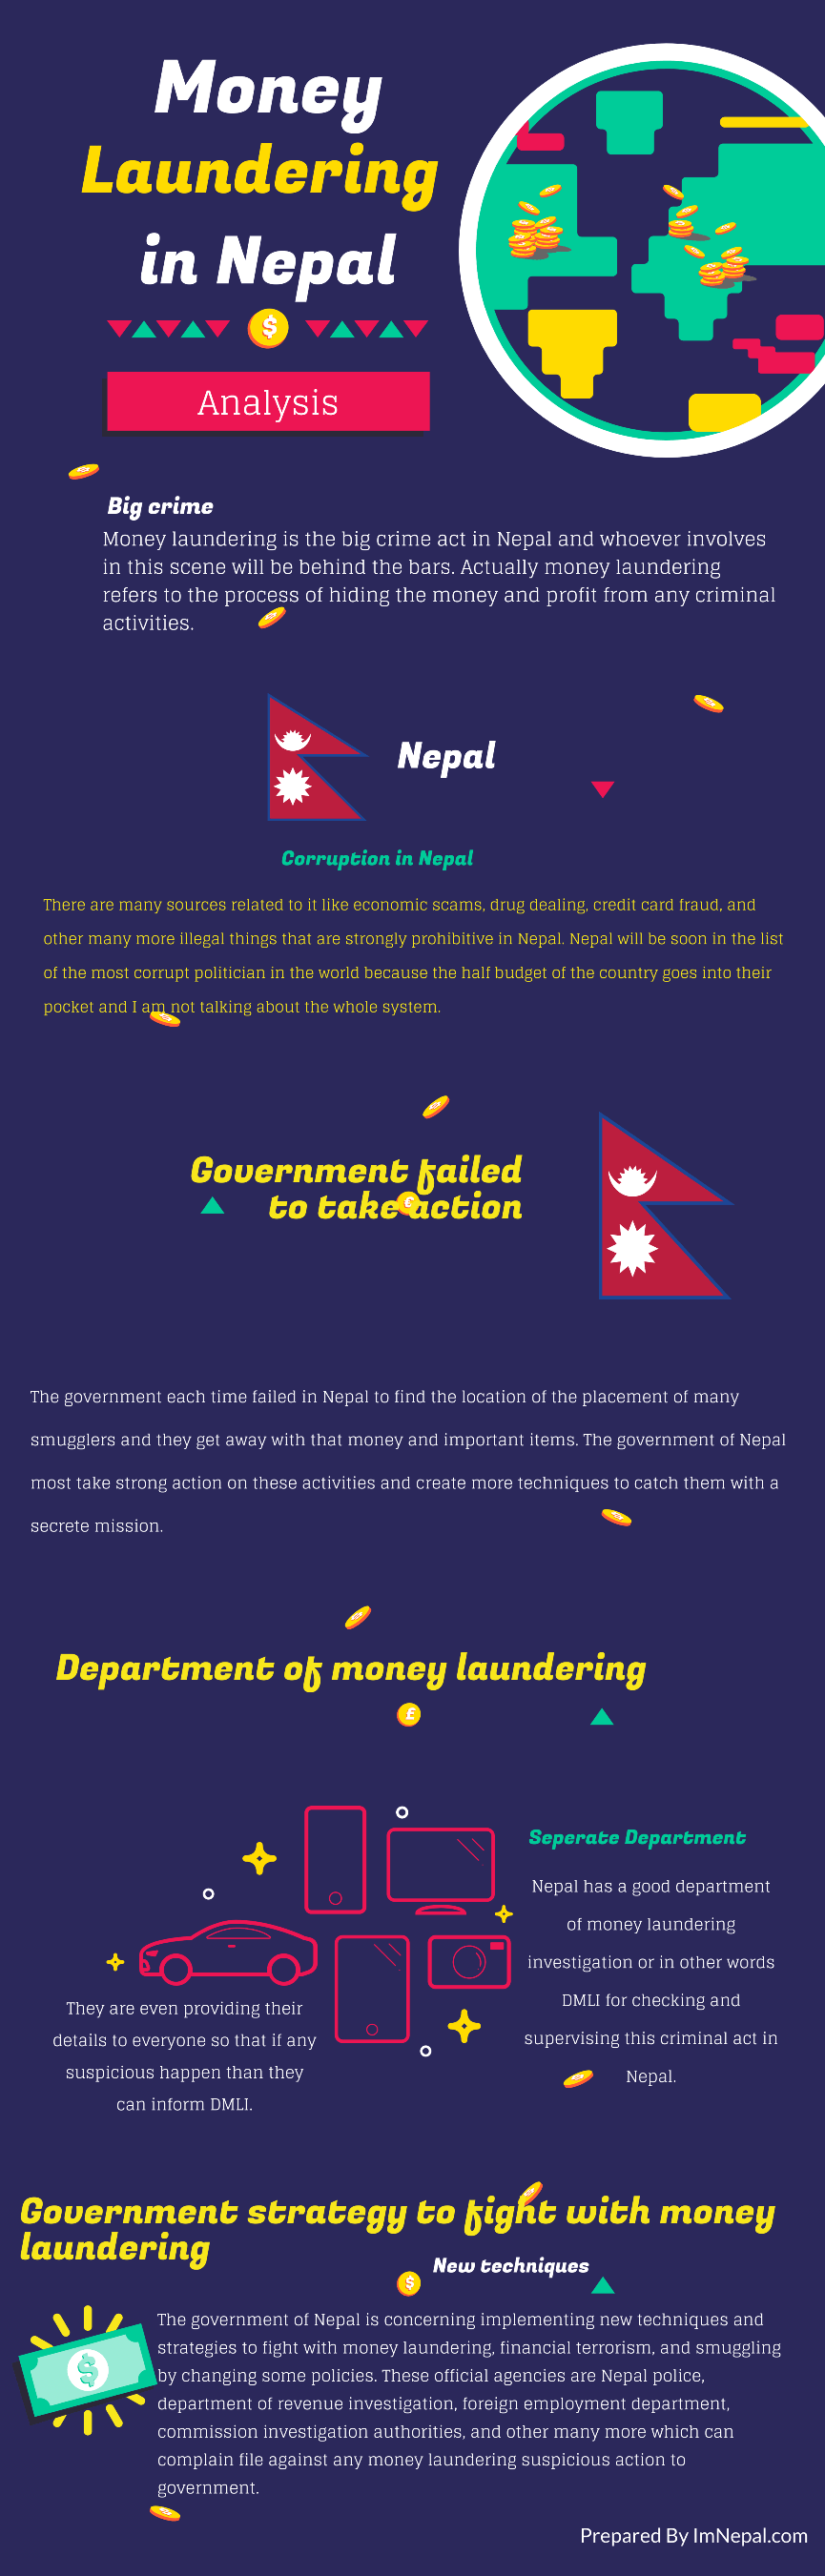 Thinking About Money Laundering in Nepal? 4 Things Why Nepal Government Must Take Action!